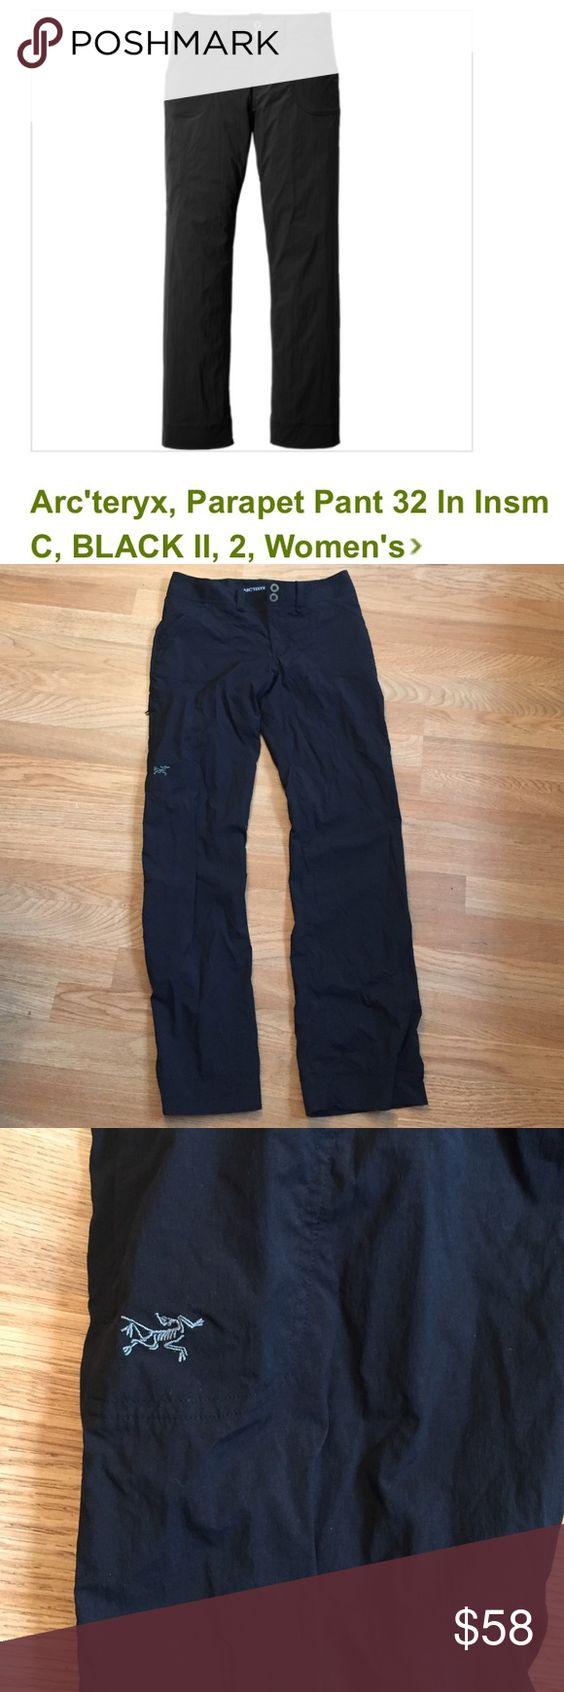 Arcteryx Women's Parapet Pant Bought from REI, soo comfy and lightweight. Perfect for climbing and hiking! Very flattering, just a little too snug on me! Probably only worn twice. Arc'teryx Pants Boot Cut & Flare